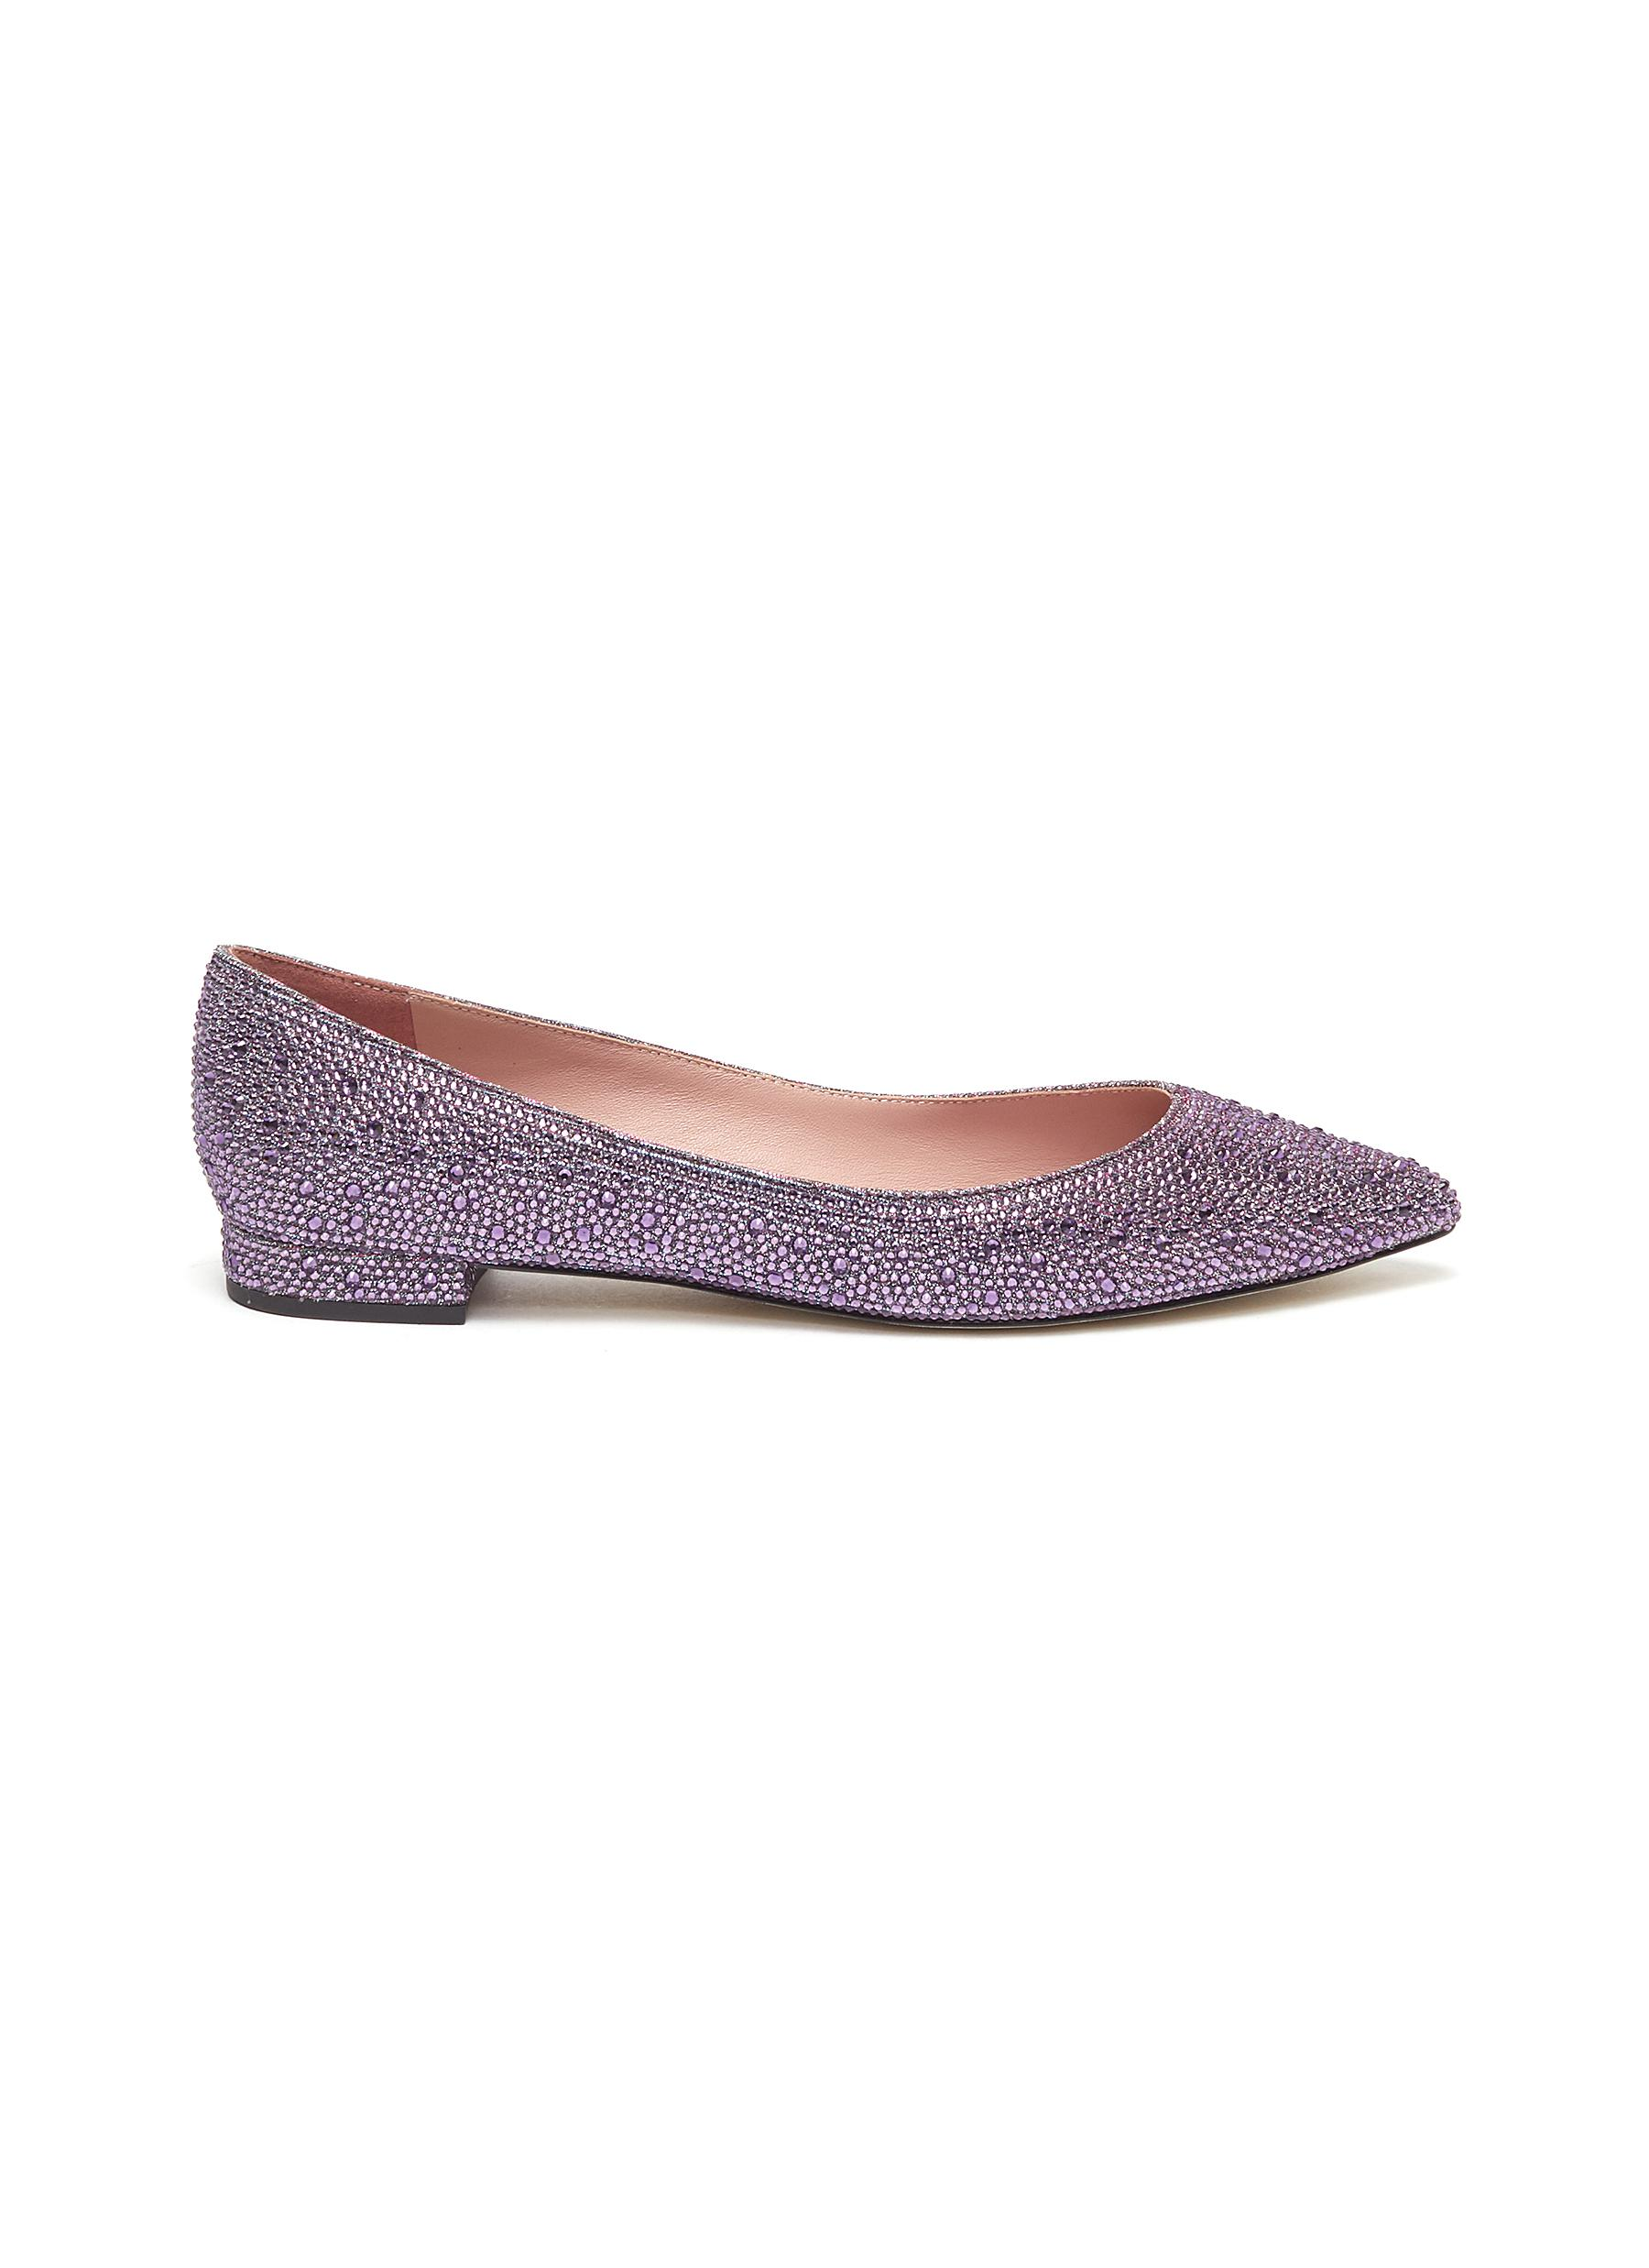 Angus strass skimmer flats by Pedder Red